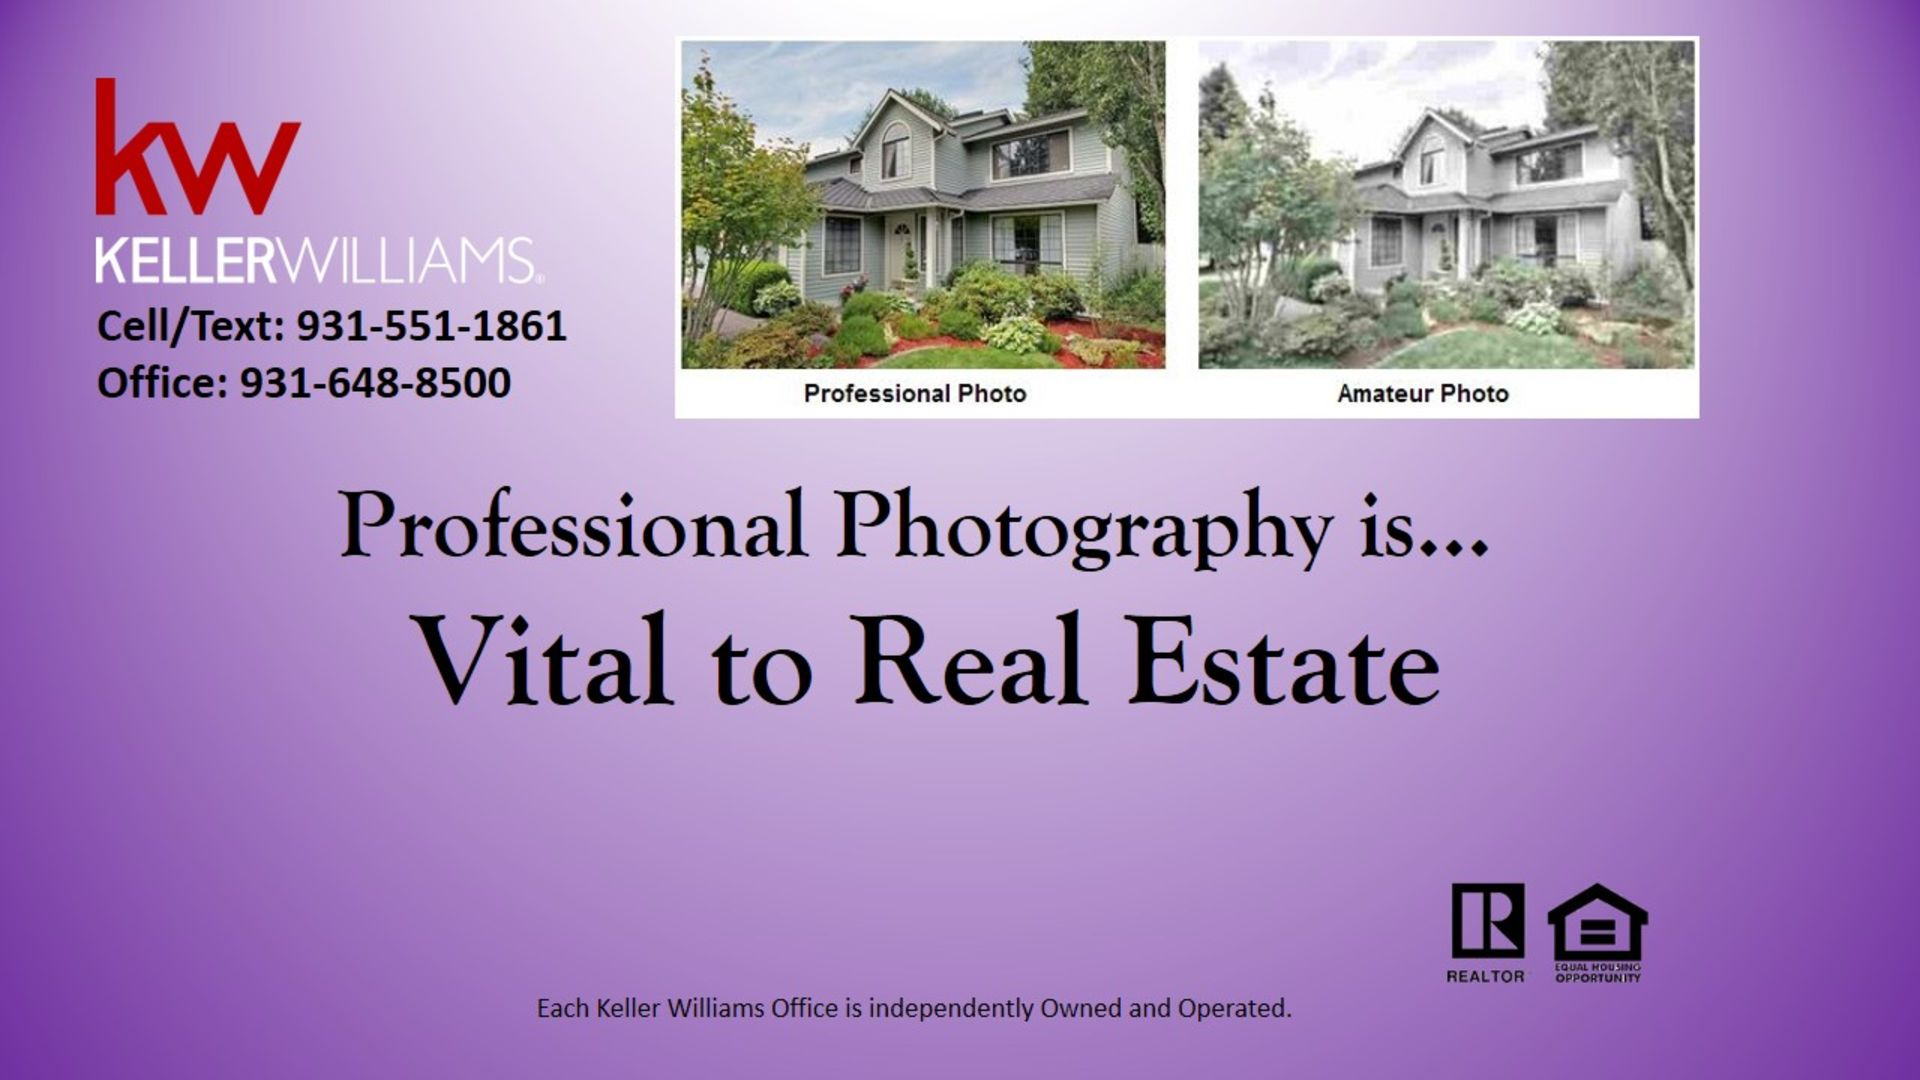 Professional Photography is Vital to Real Estate